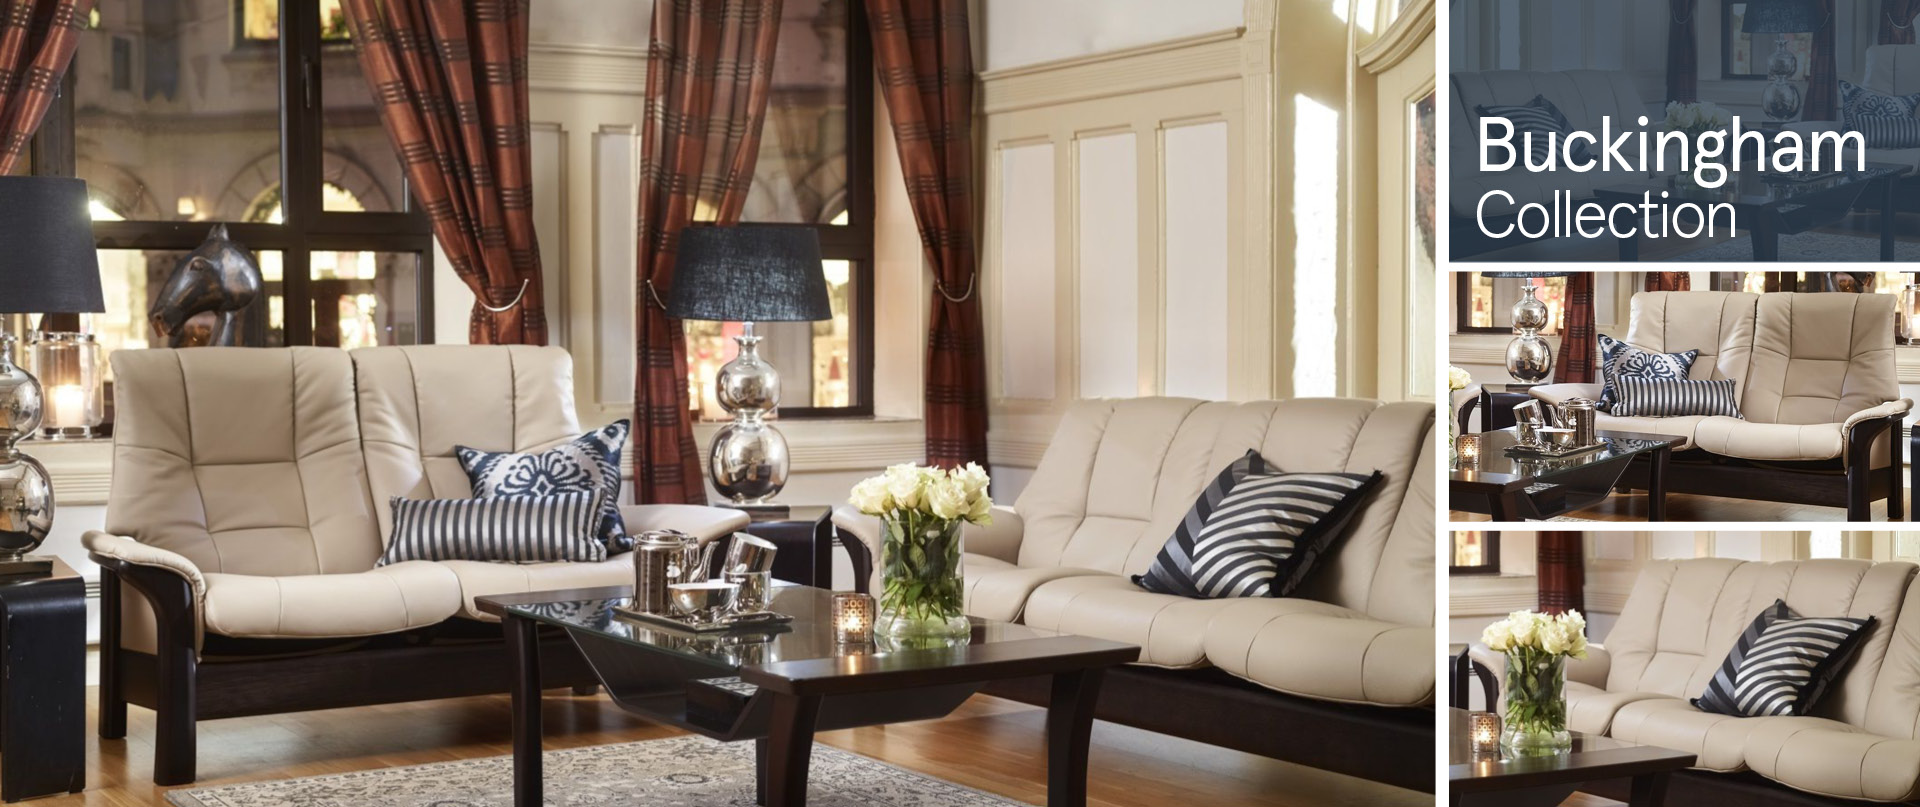 Buckingham Leather Sofa Ranges